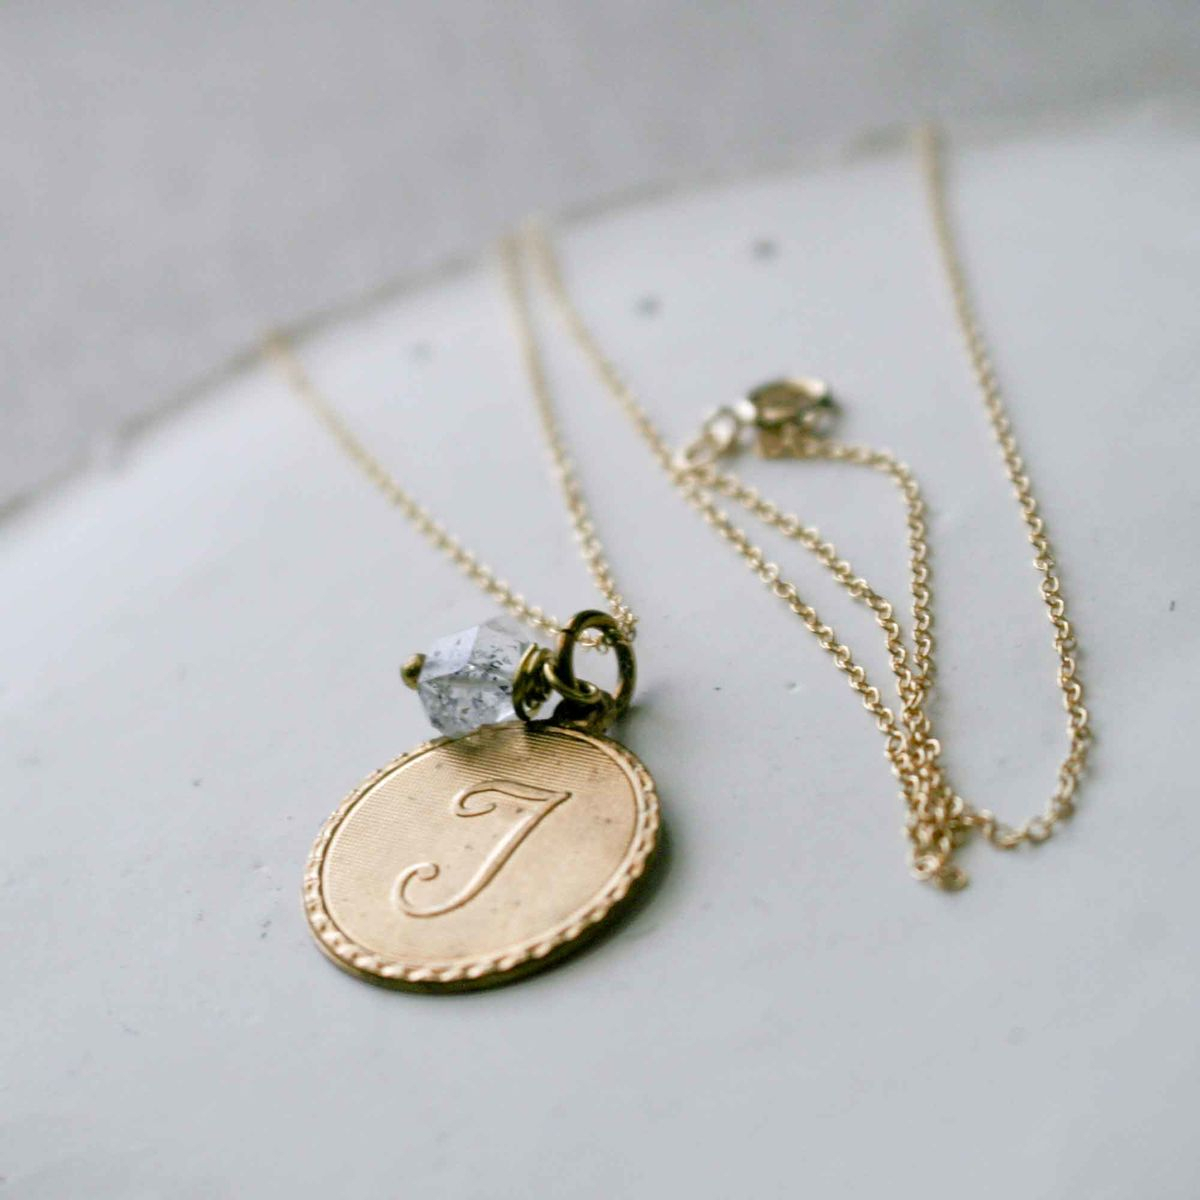 Uppercase Cursive Initial Monogram Letter Round Disc Charm Necklace Intended For 2020 Letter H Alphabet Locket Element Necklaces (Gallery 18 of 25)